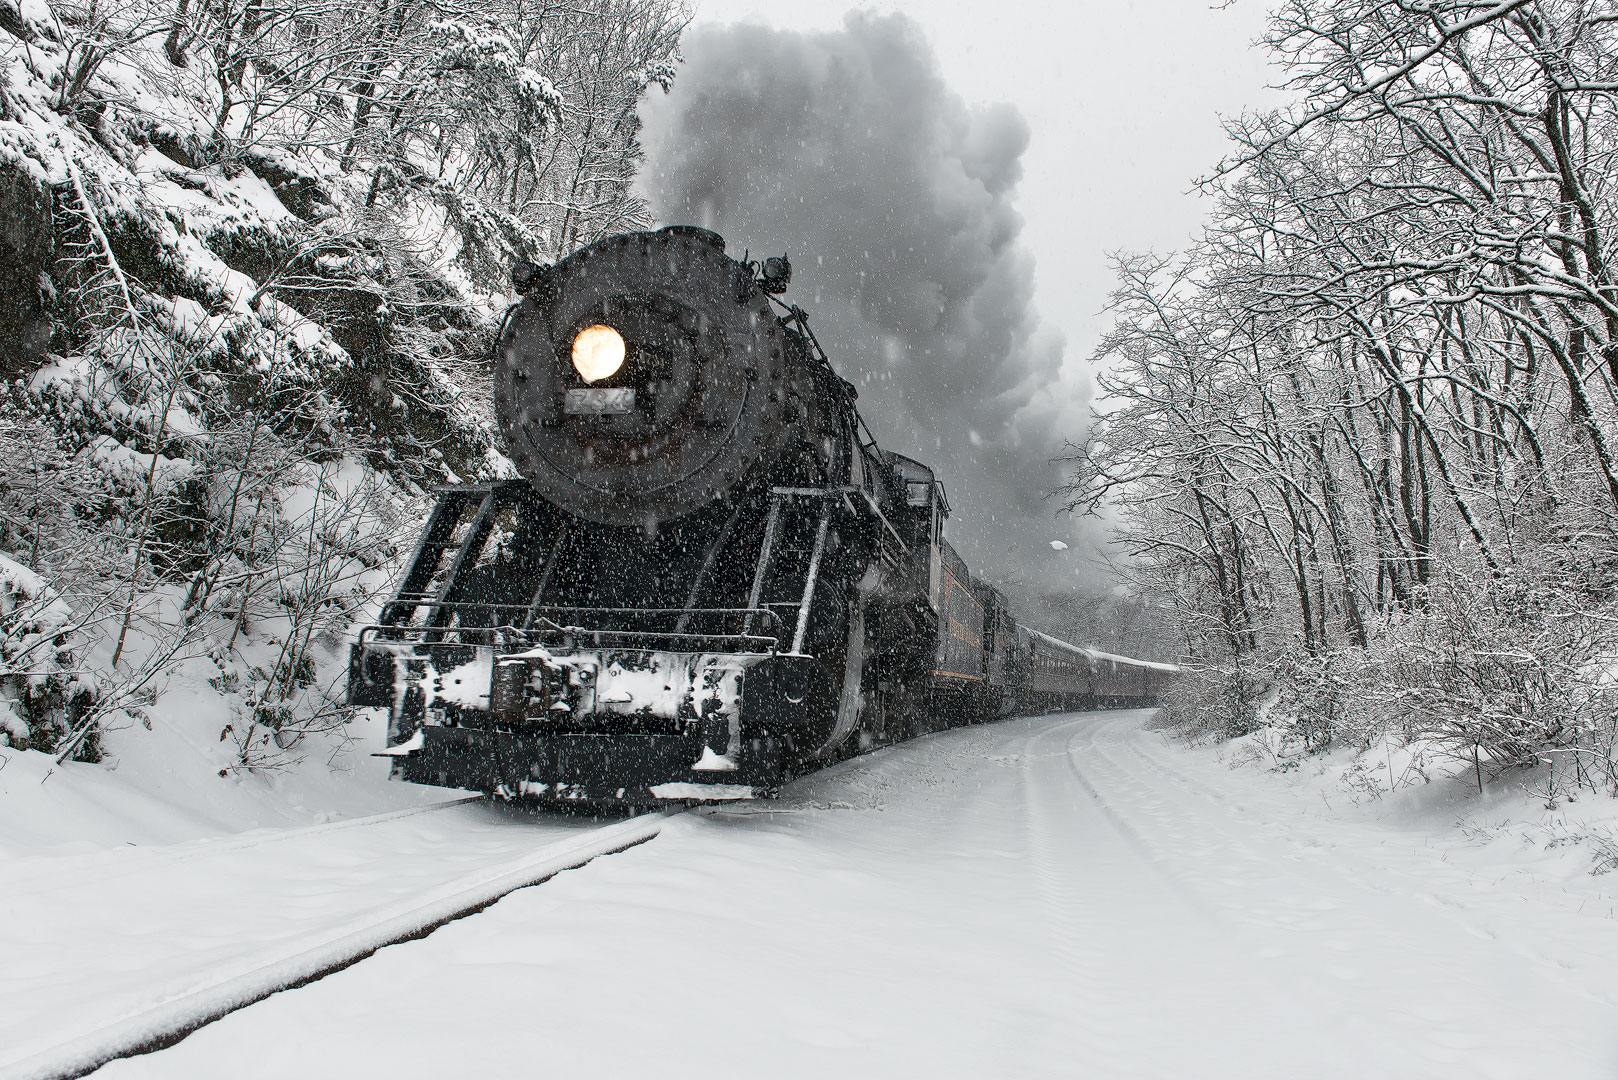 Santa Express, Cumberland, Maryland, train, steam, engine, winter, snow, cold, holiday, railroad, scenic, Frostburg, Western Maryland Railroad, Bernard Chen, Timescapes, Christmas, outdoors, old, photo